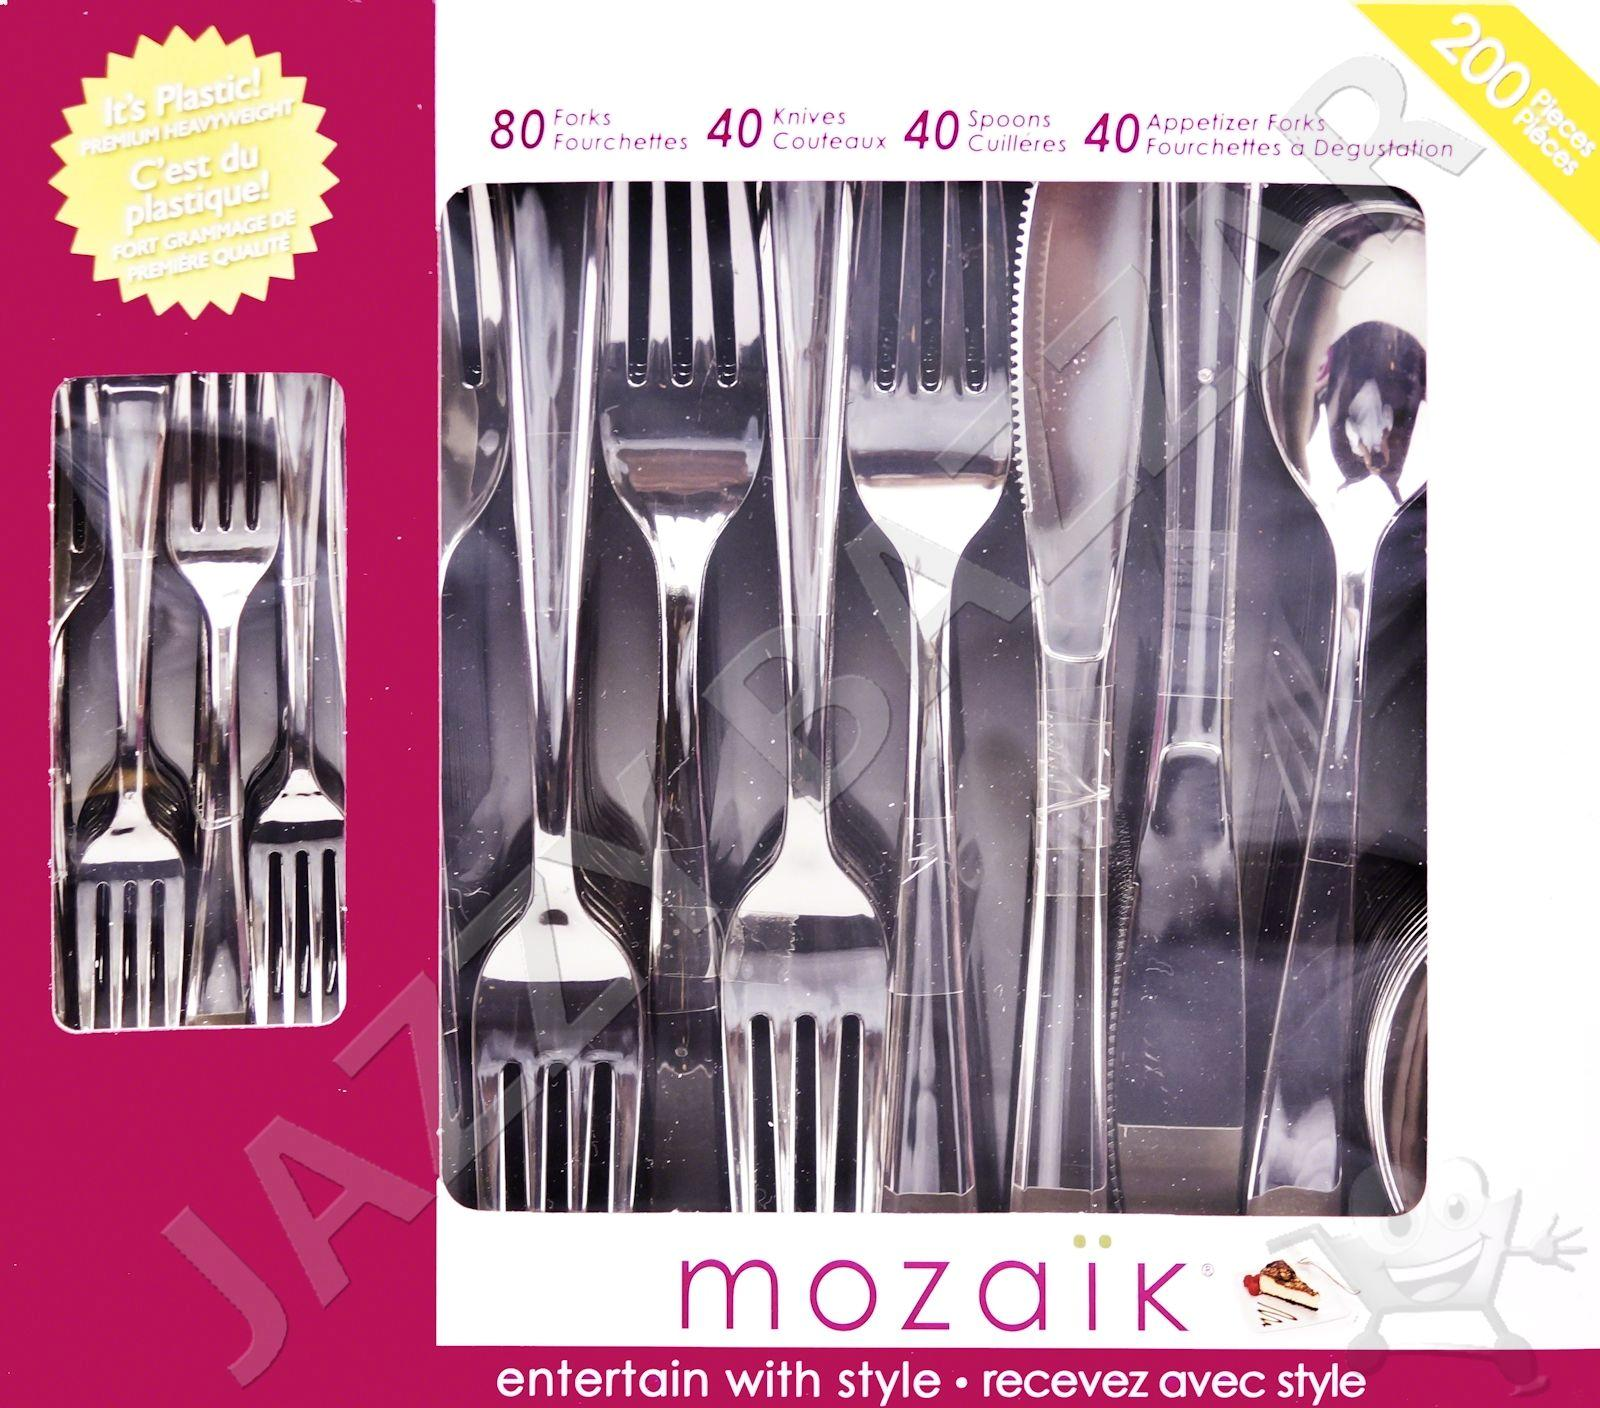 Best Deal On Silverware 200 Disposable Plastic Cutlery Mozaik Silverware Silver